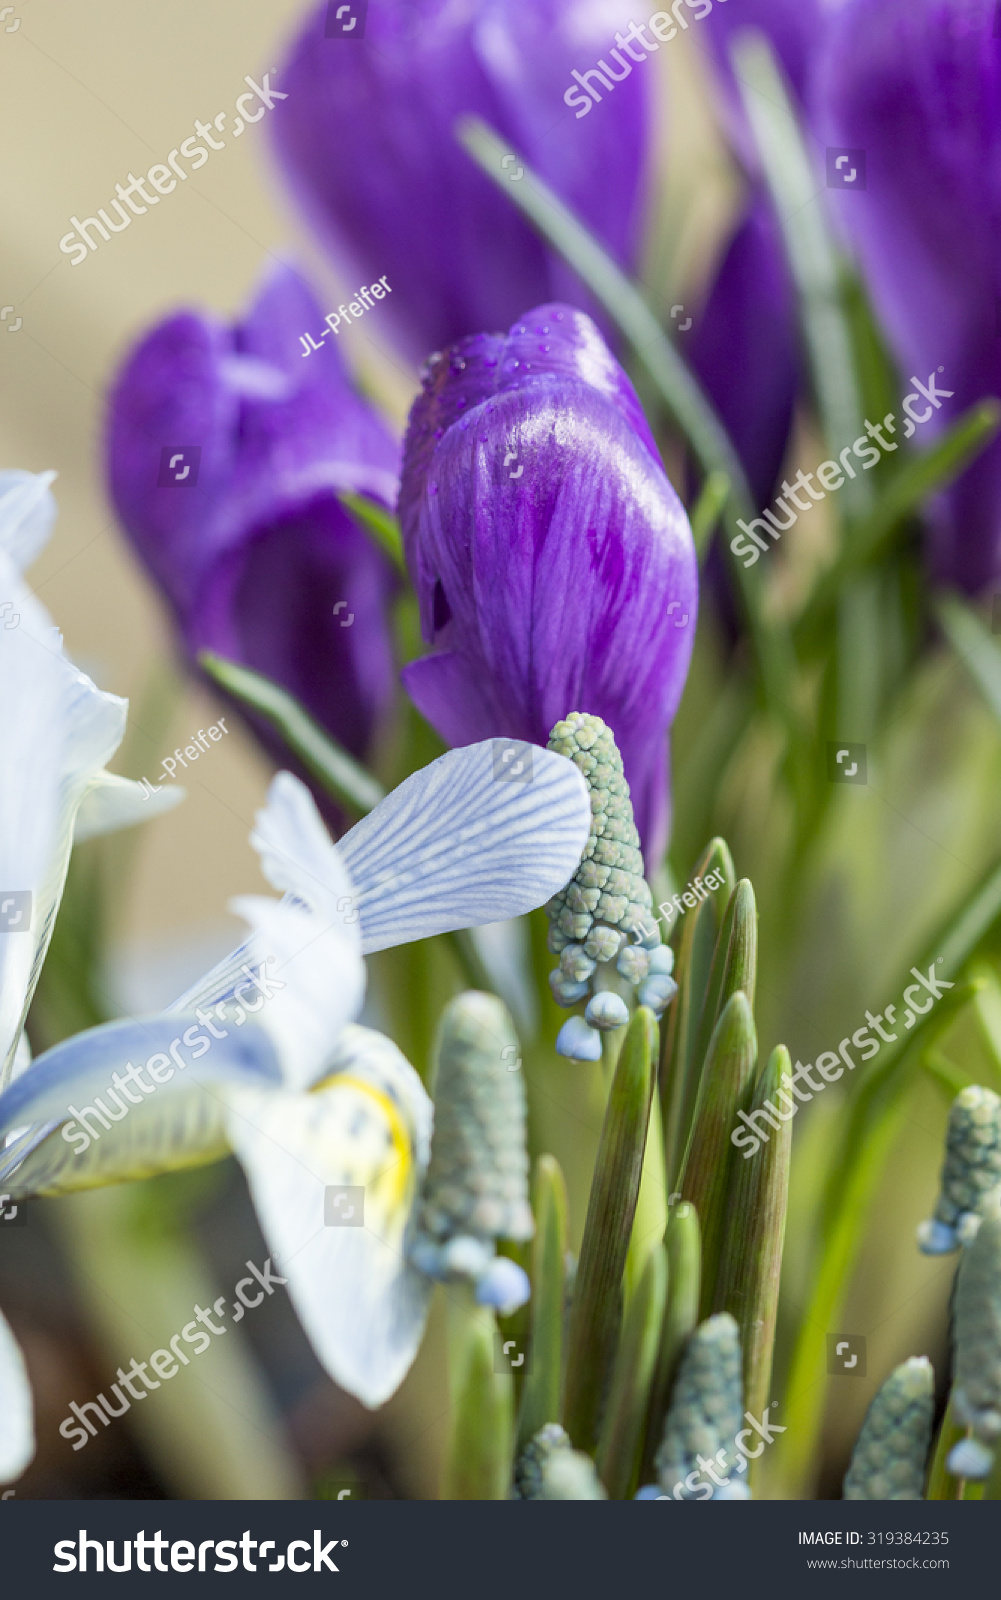 Single Pretty Deep Purple Crocus Flower Stock Photo Royalty Free